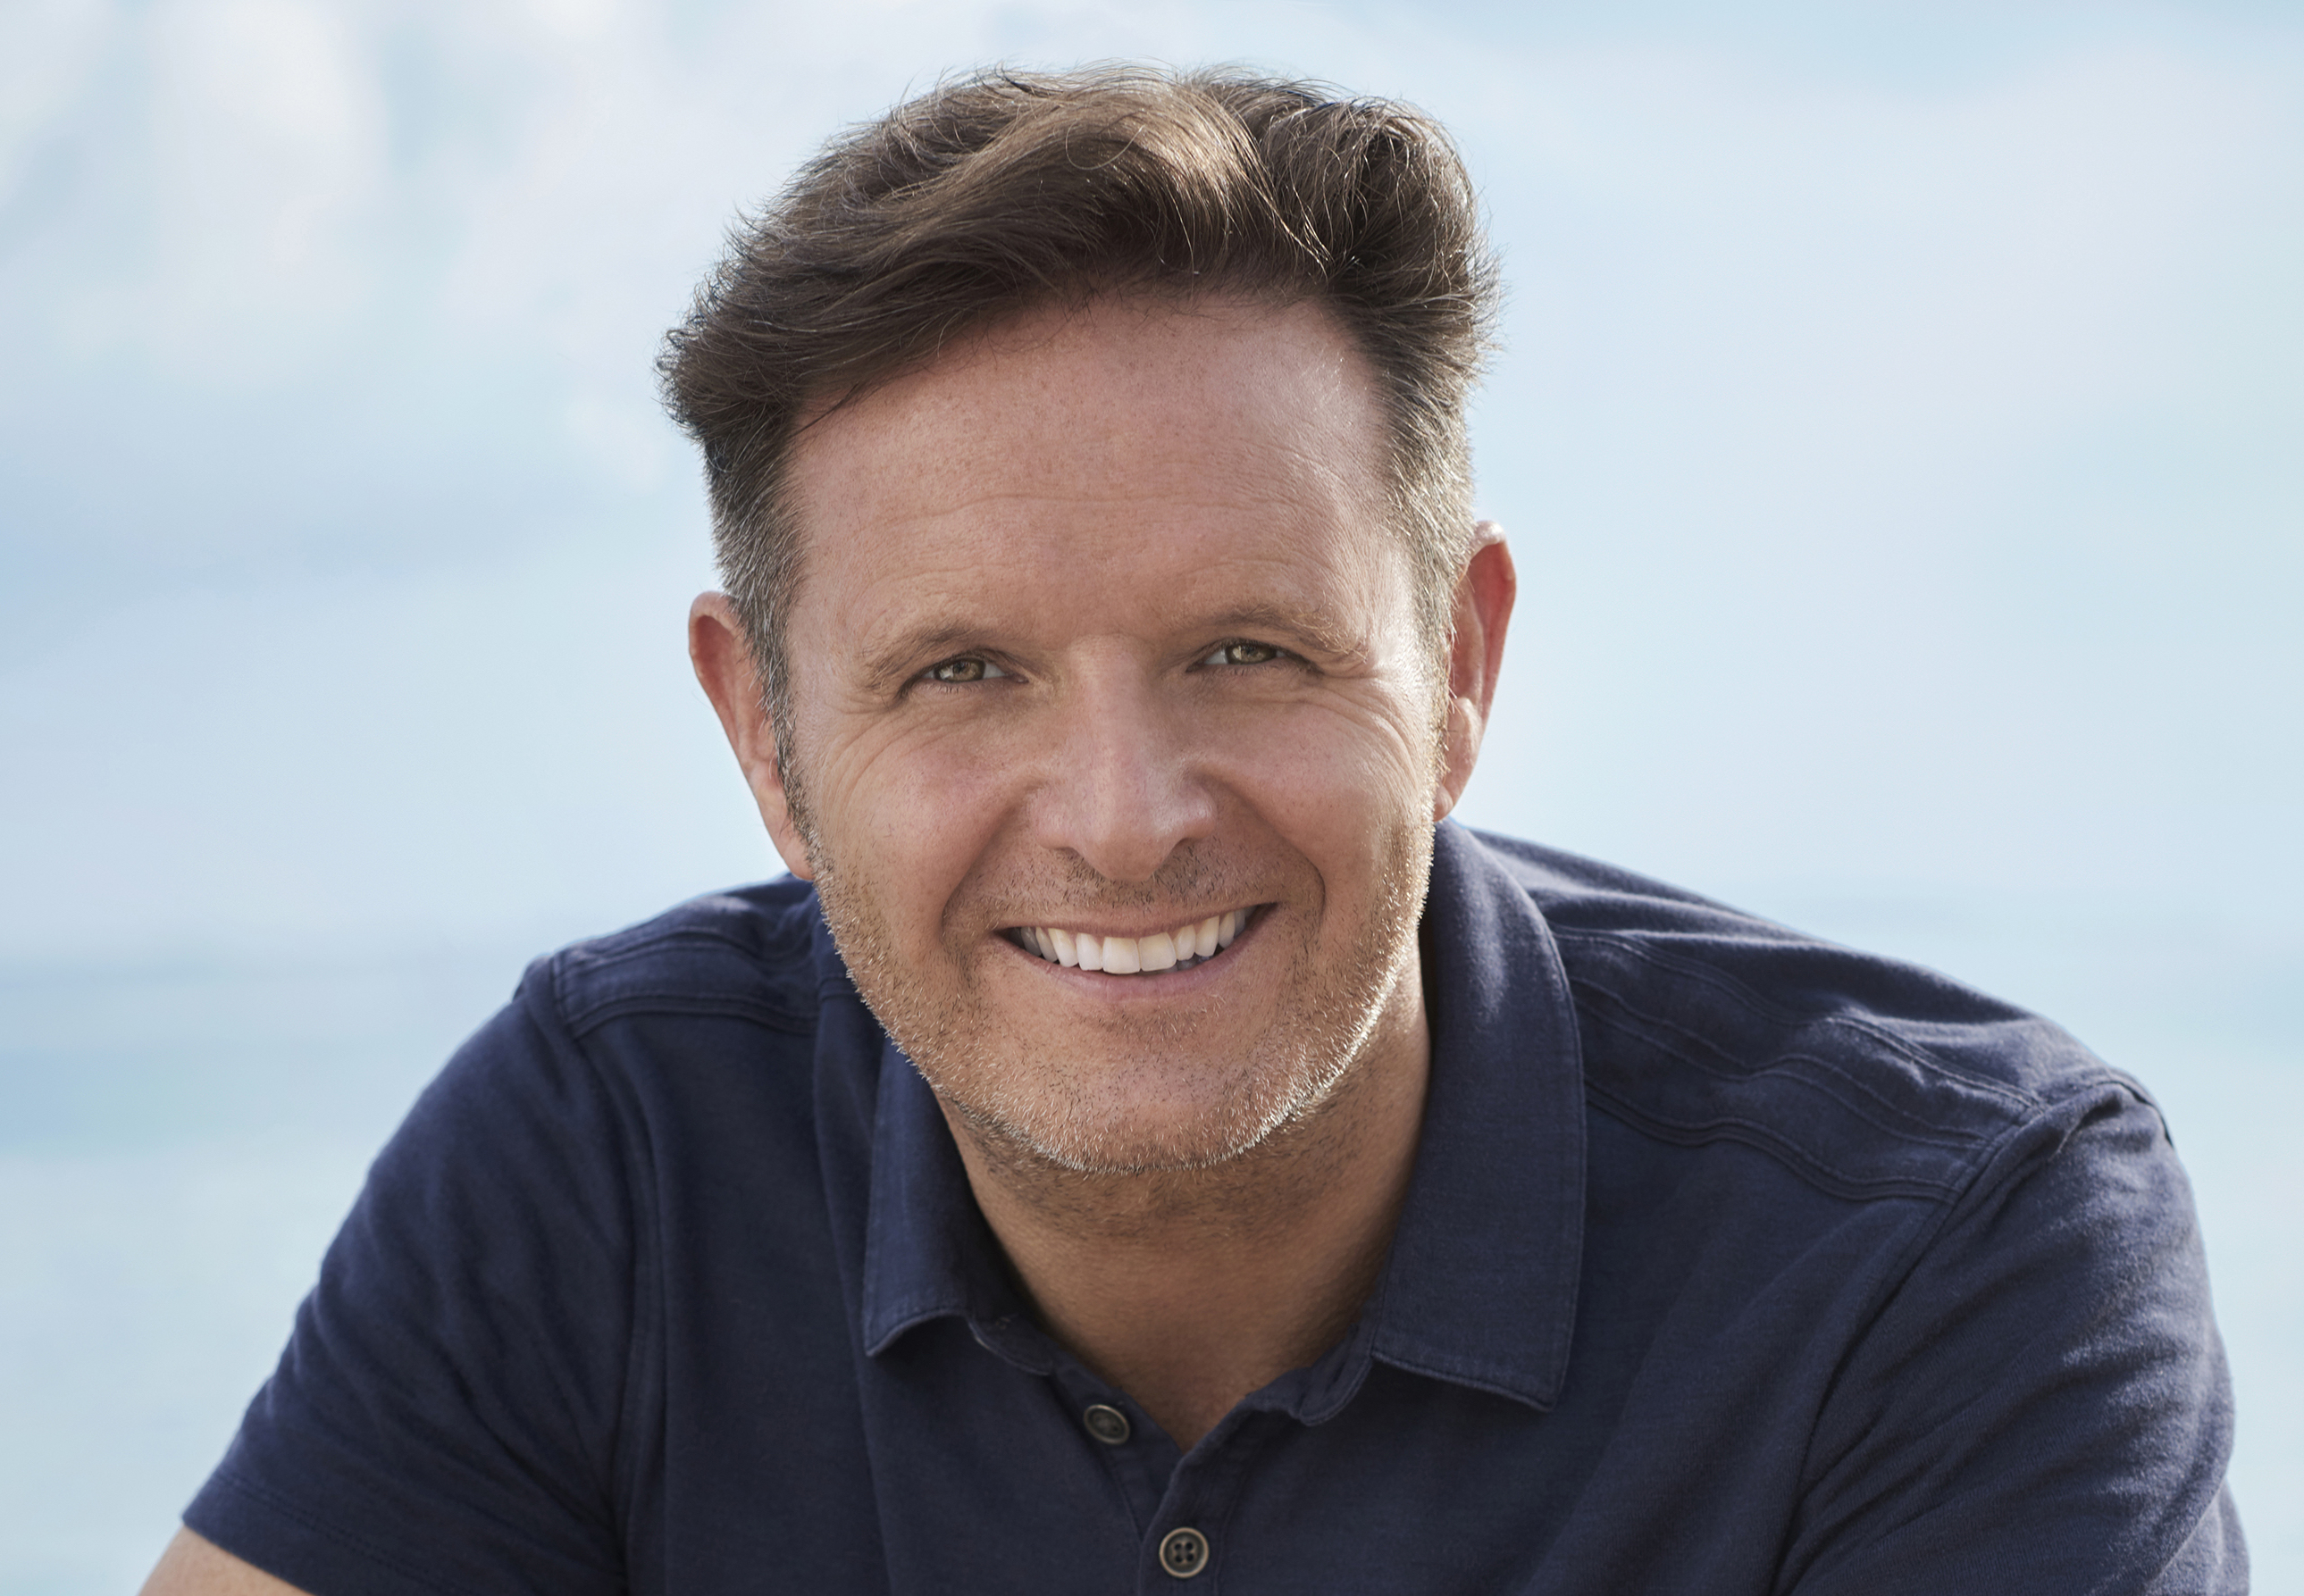 burnett dating Mark burnett, producer: shark tank mark burnett (born 17 july 1960) is a british television producer, based in los angeles burnett is currently the executive producer of five network television series with seven hours of network programming.